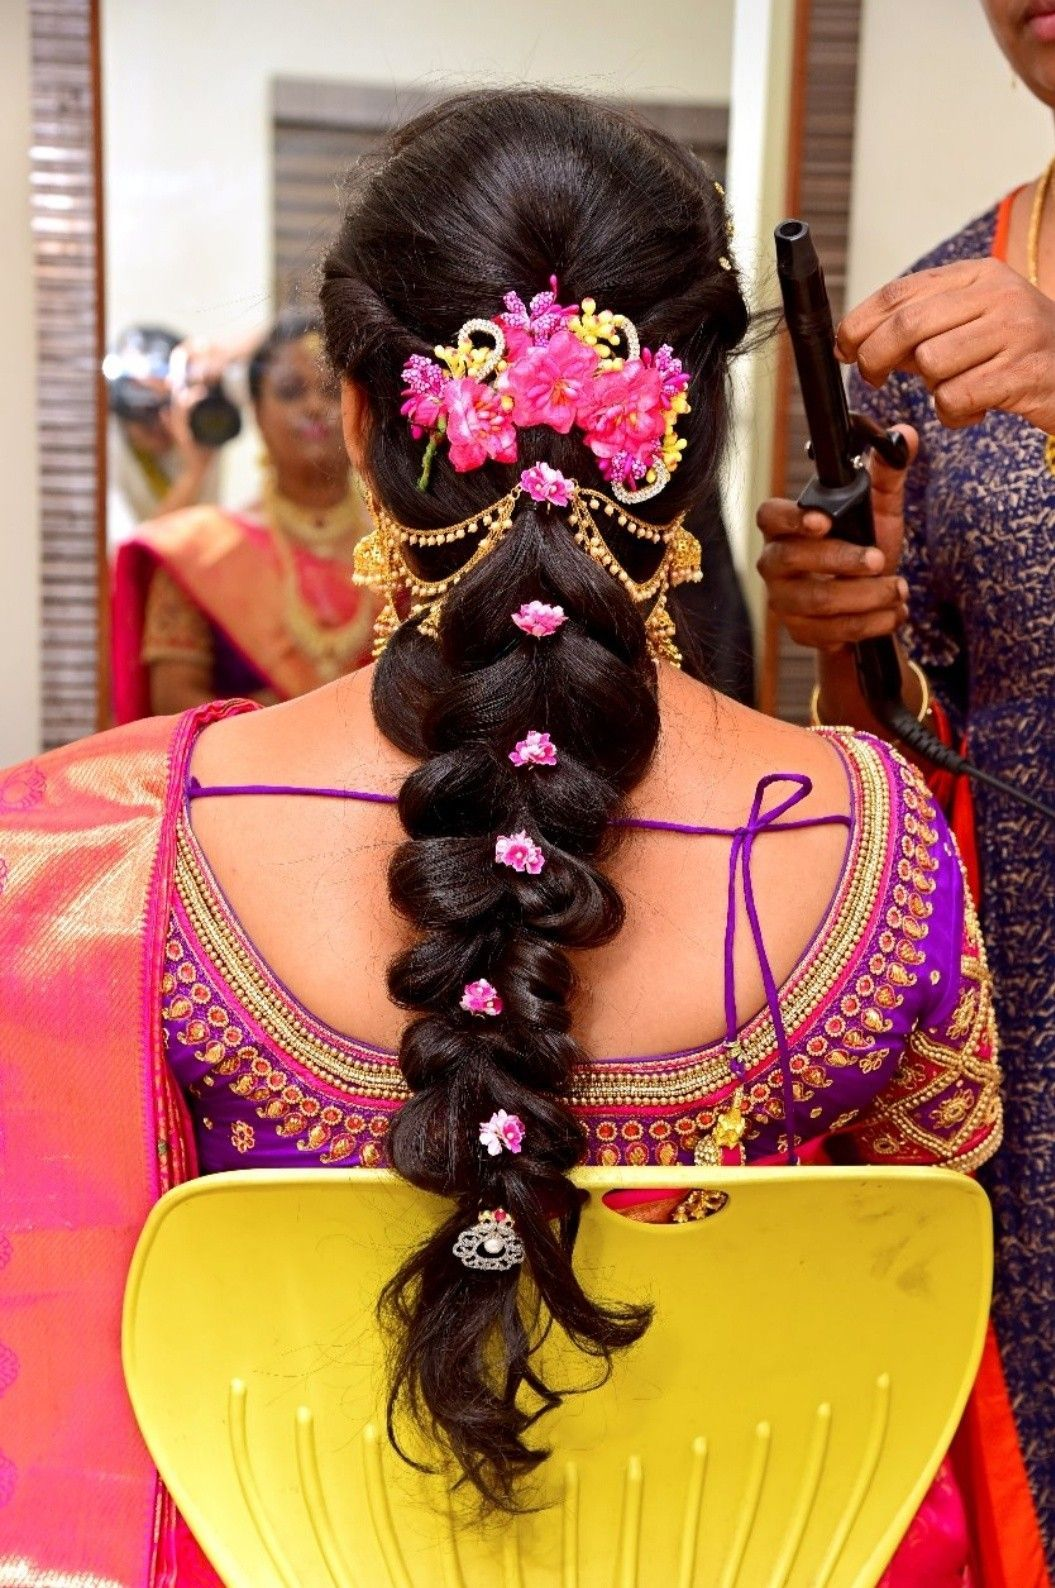 Spring In Hairstyle South Indian Bridal Hairstyles For Reception Evening Hairstyle B Bridal Hairstyle For Reception Indian Bridal Hairstyles Bridal Hairdo